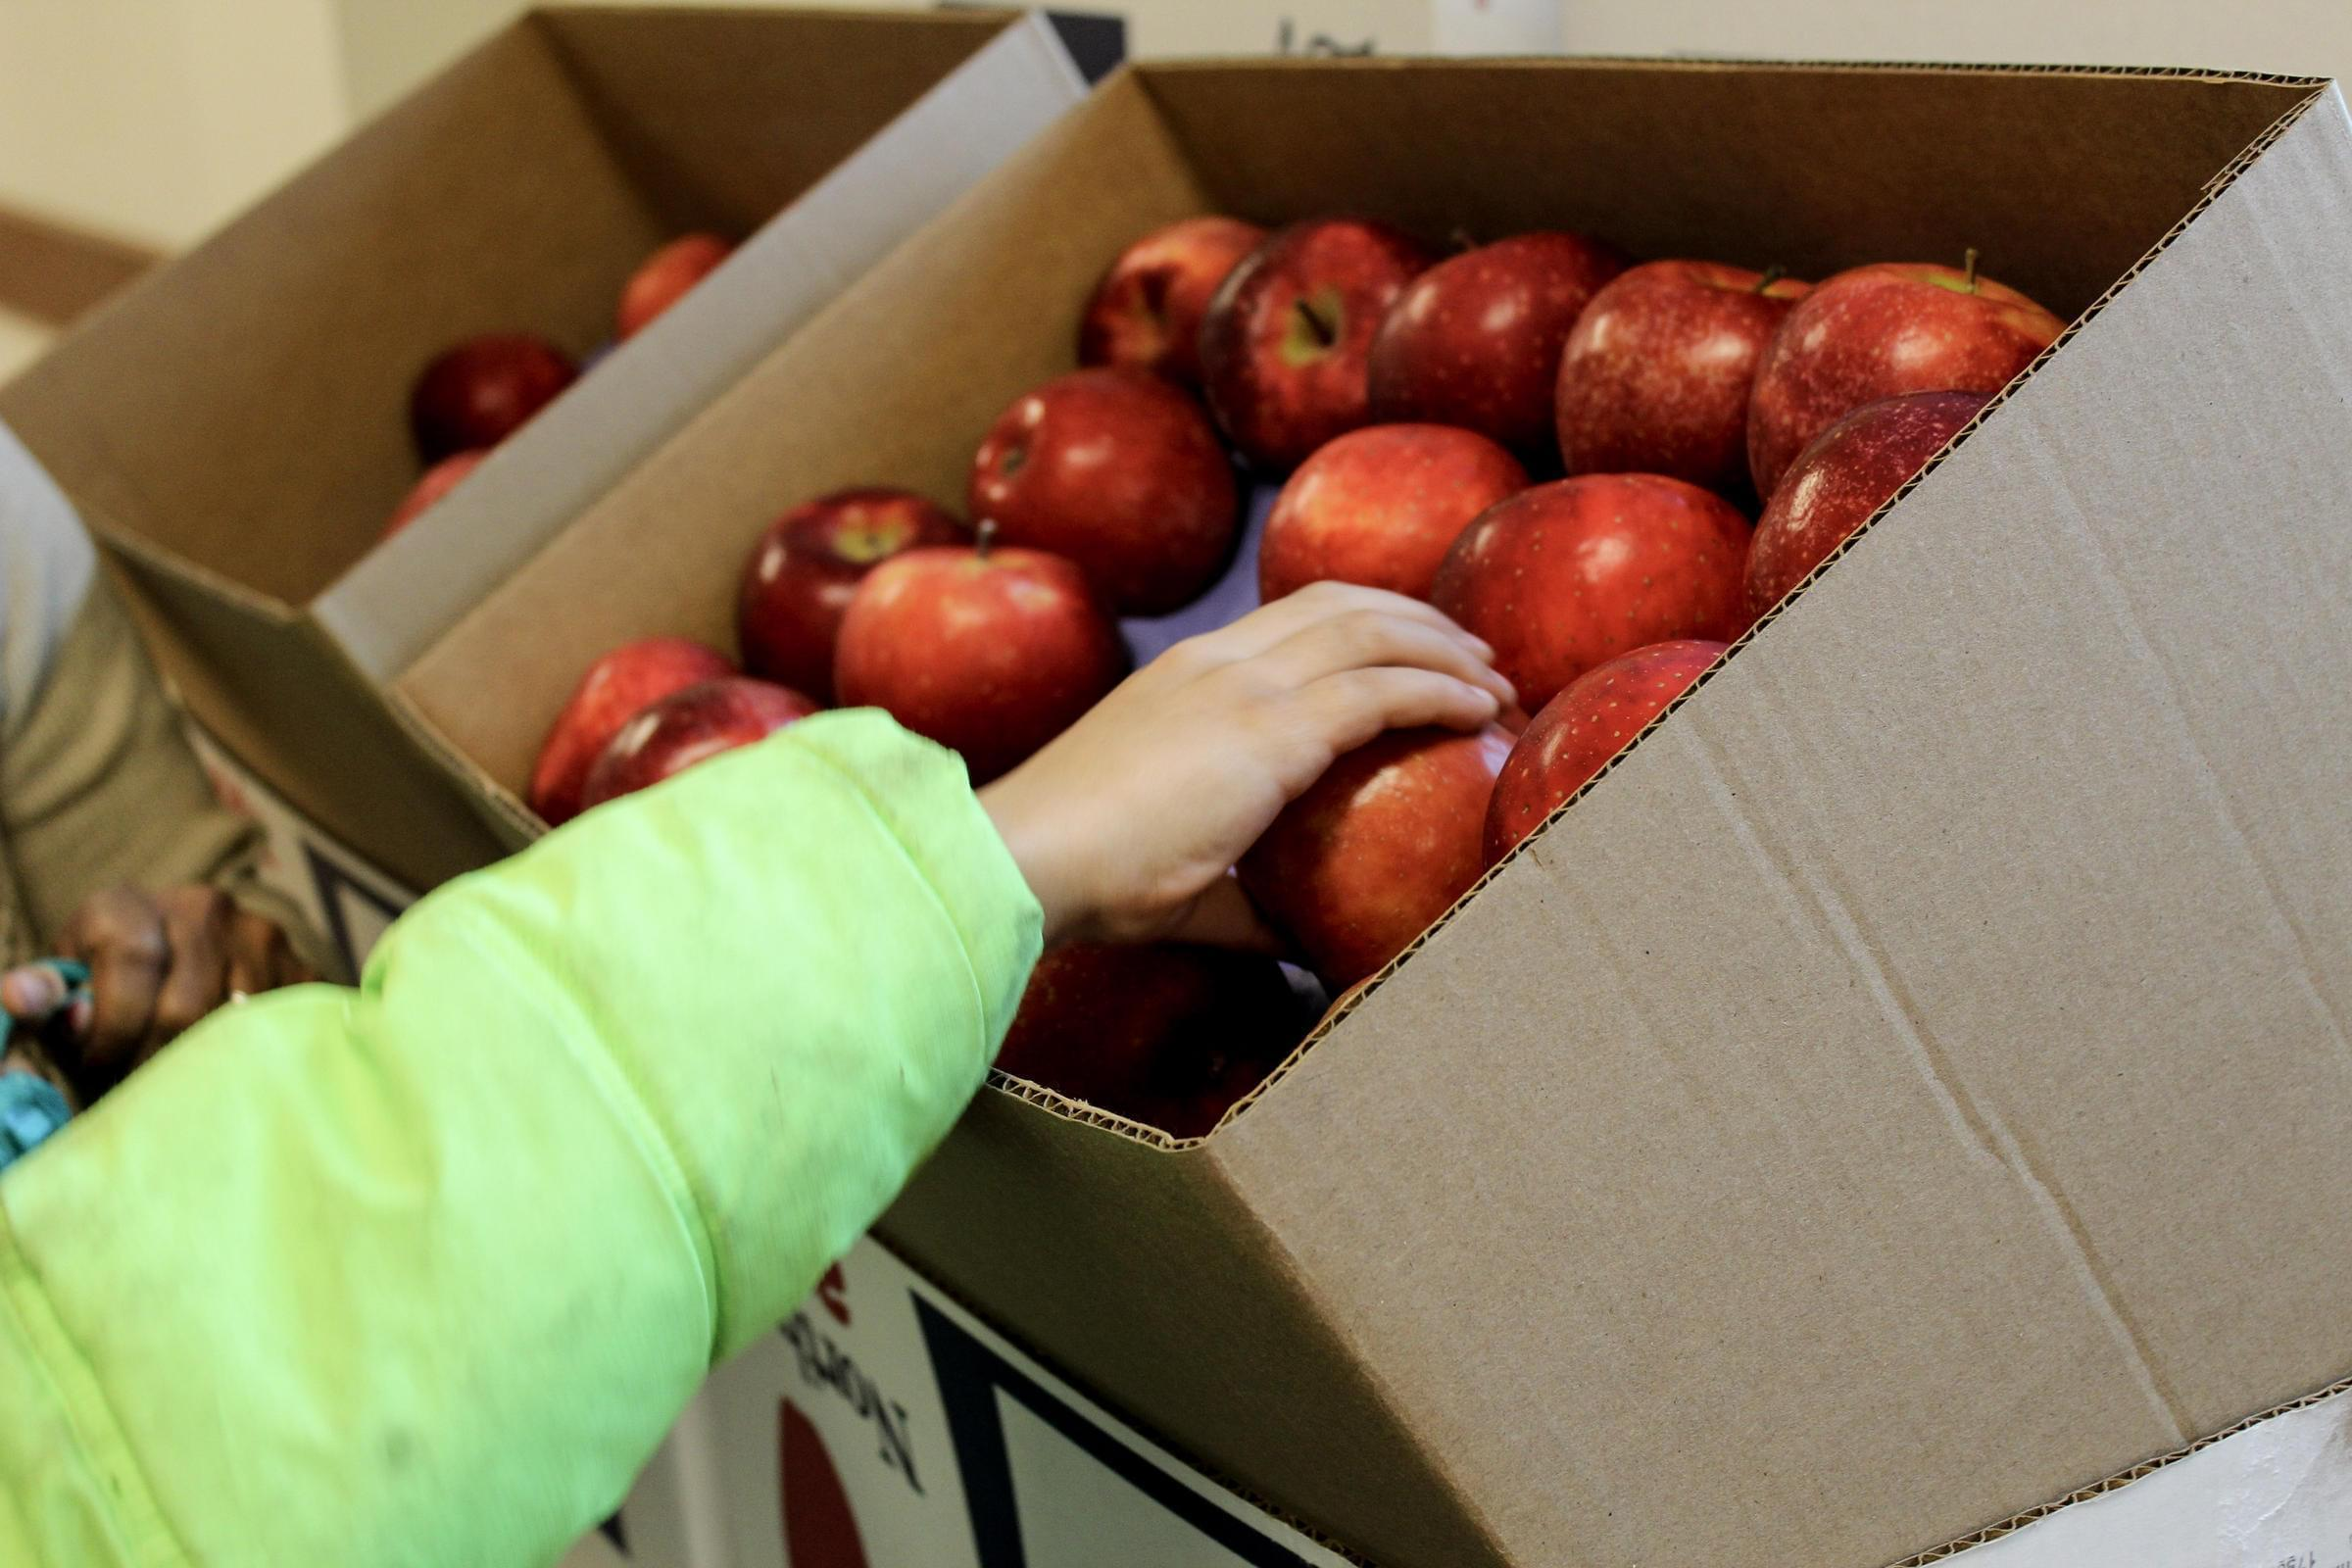 Diane Doherty, executive director of the Illinois Hunger Coalition, says cutting back on benefits like food stamps, can increase food insecurity for many in the state.